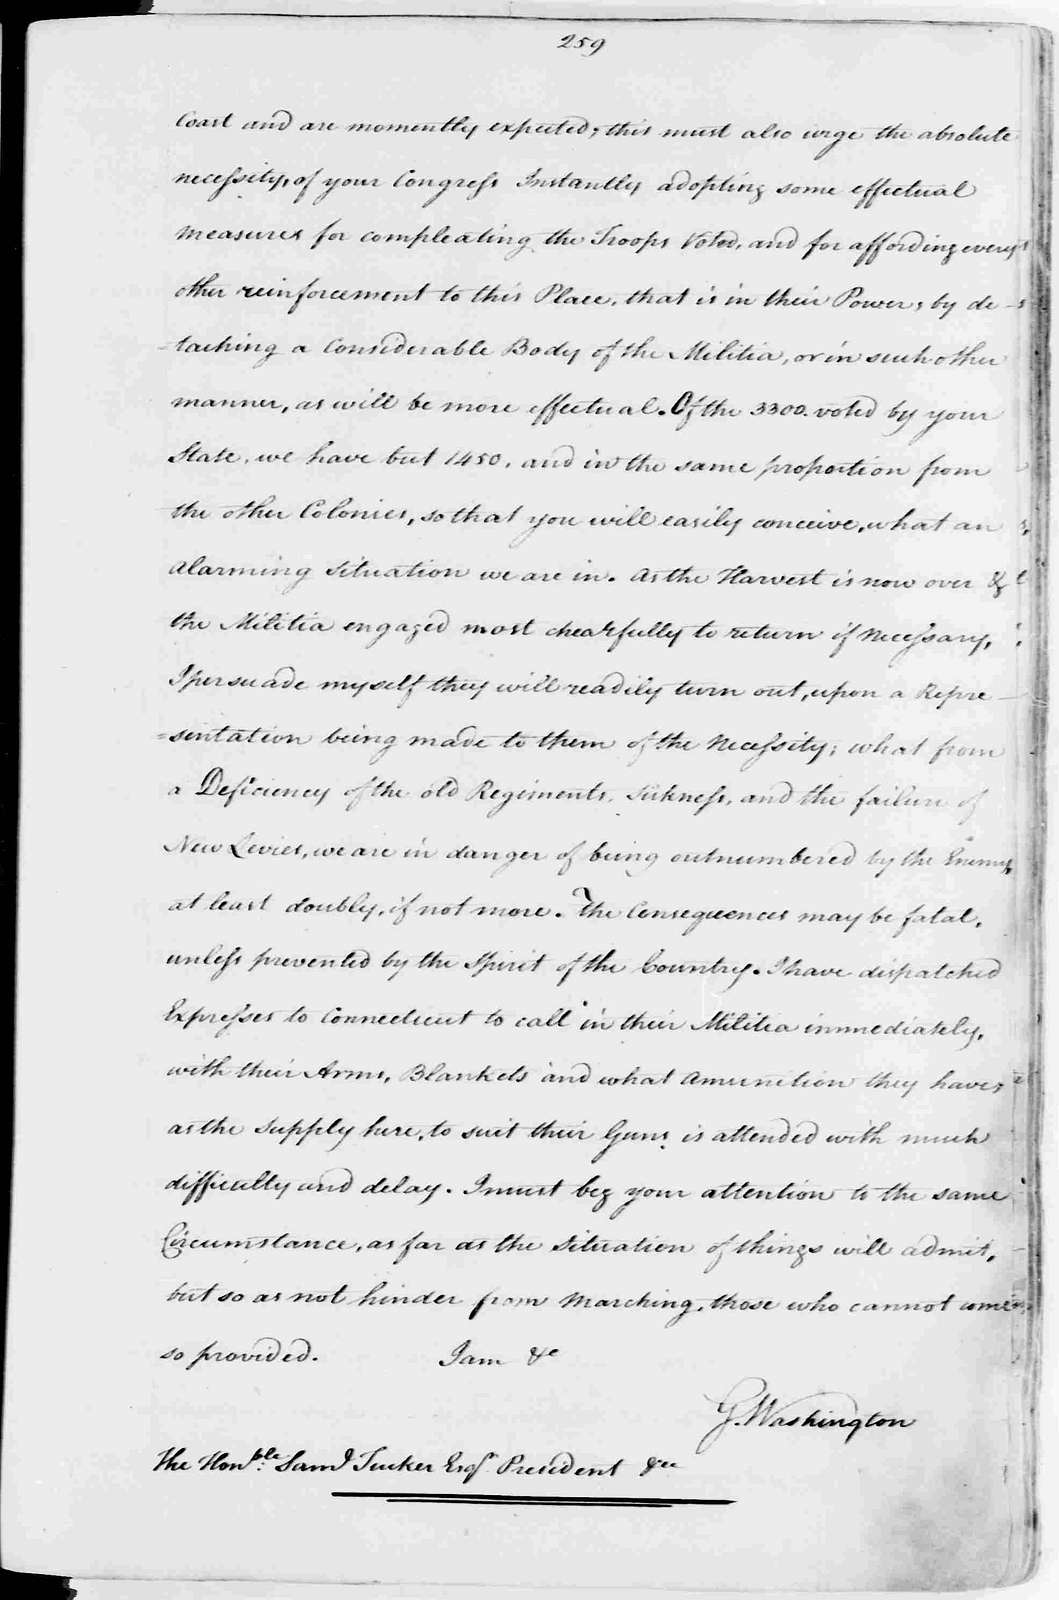 George Washington Papers, Series 3, Varick Transcripts, 1775-1785, Subseries 3C, Civil Officials and Private Citizens, Letterbook 1: June 26, 1775 - Jan. 14, 1778